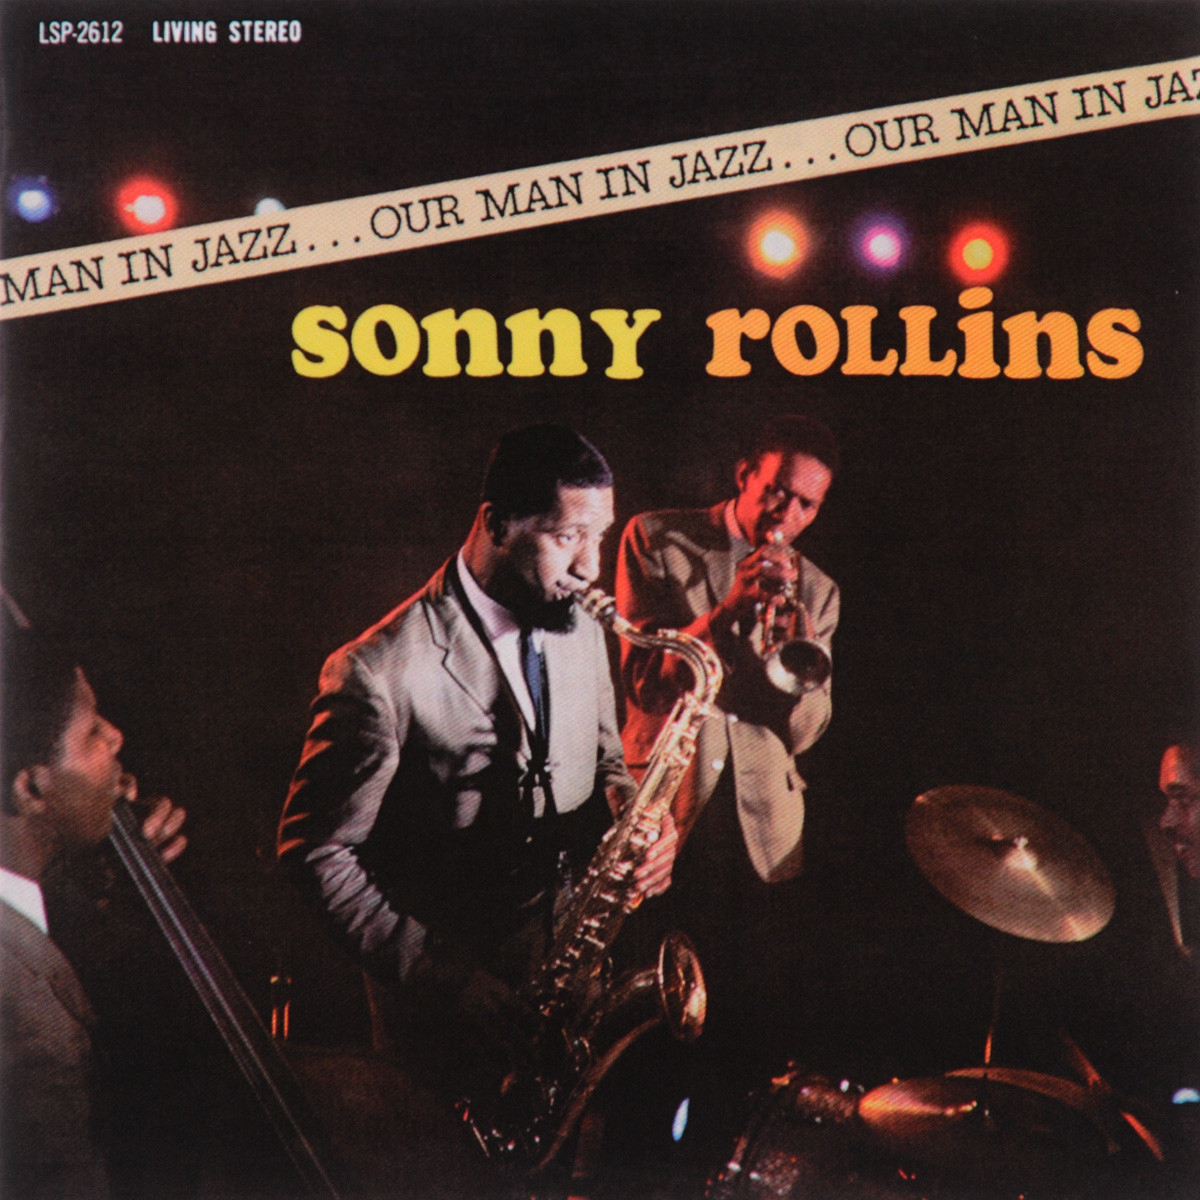 Сонни Роллинз Sonny Rollins. Our Man In Jazz сонни роллинз sonny rollins road shows vol 3